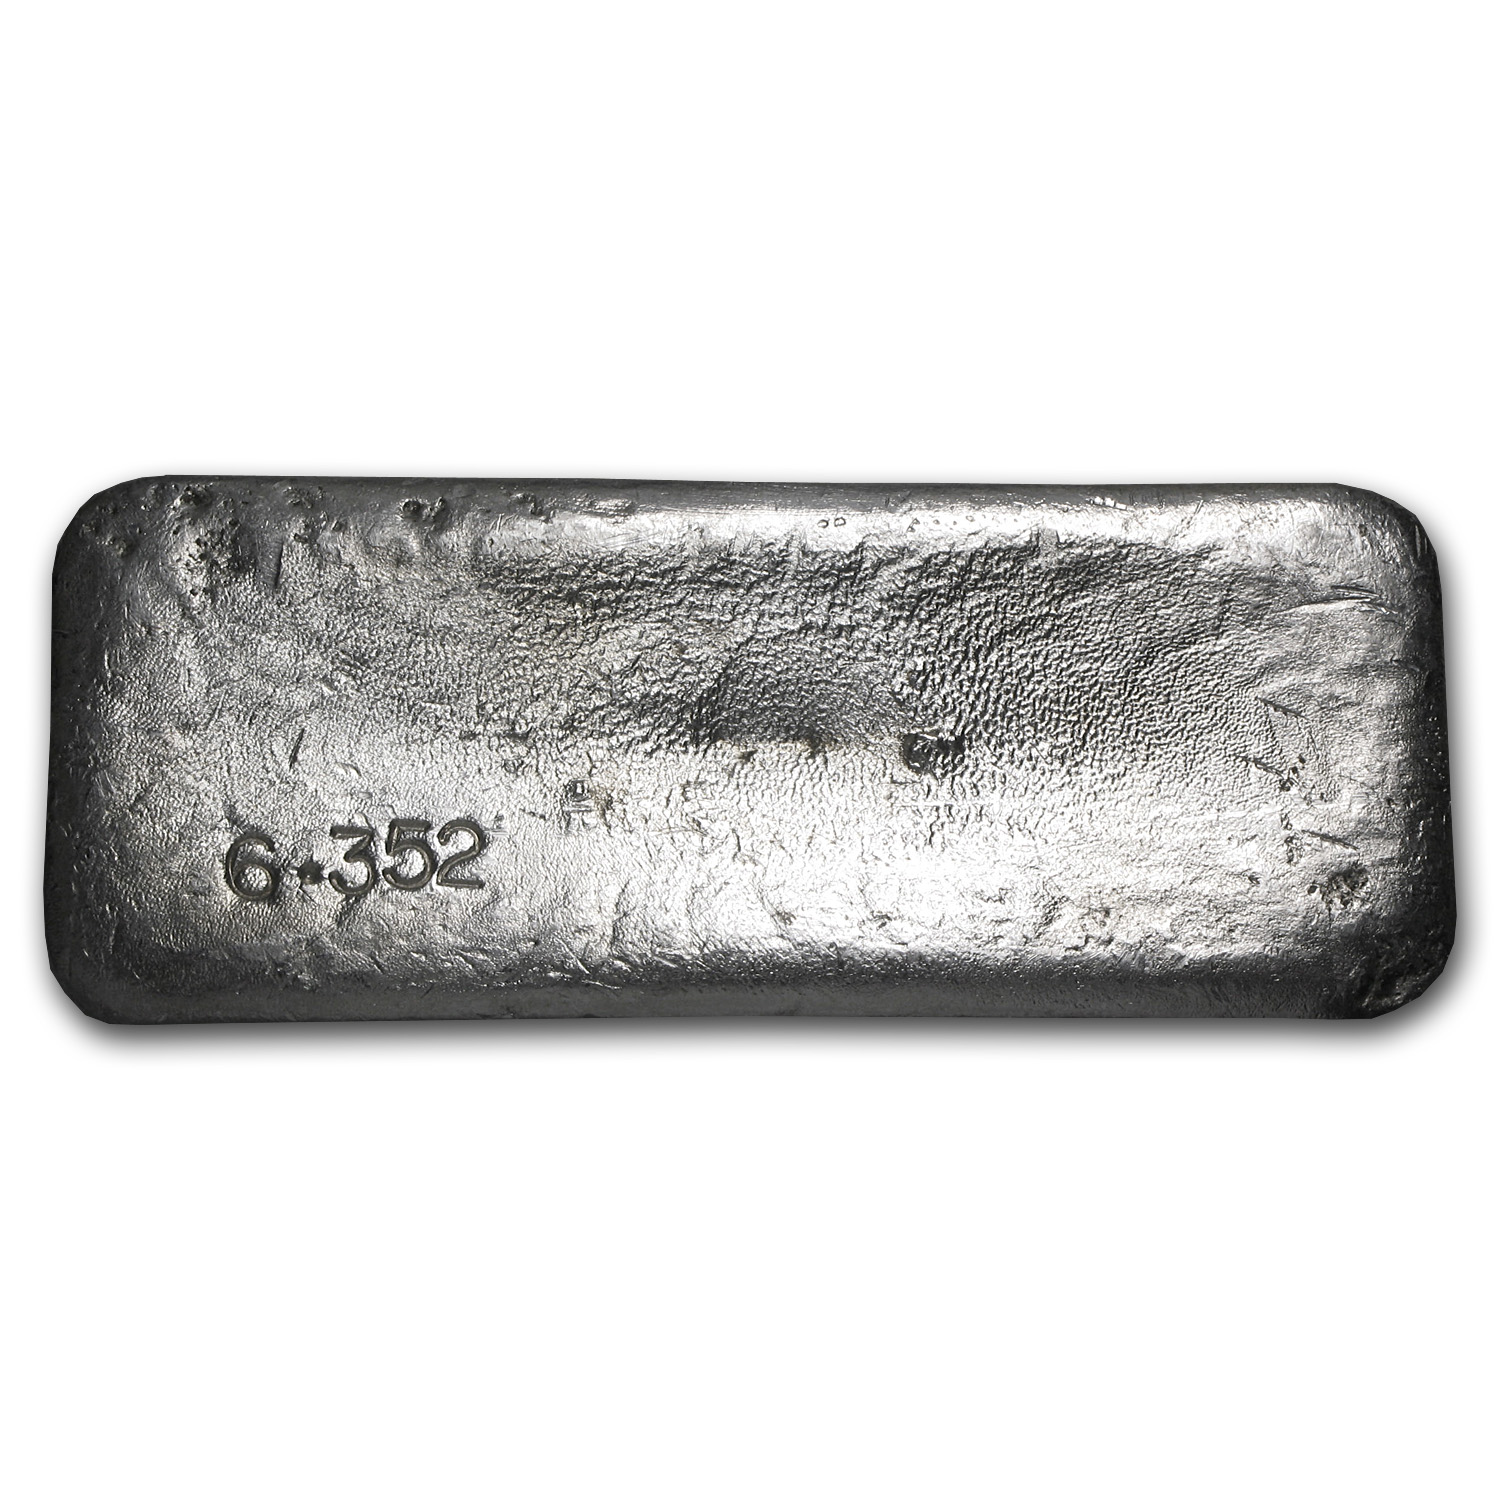 27.50 oz Silver Bar - Golden Analytical